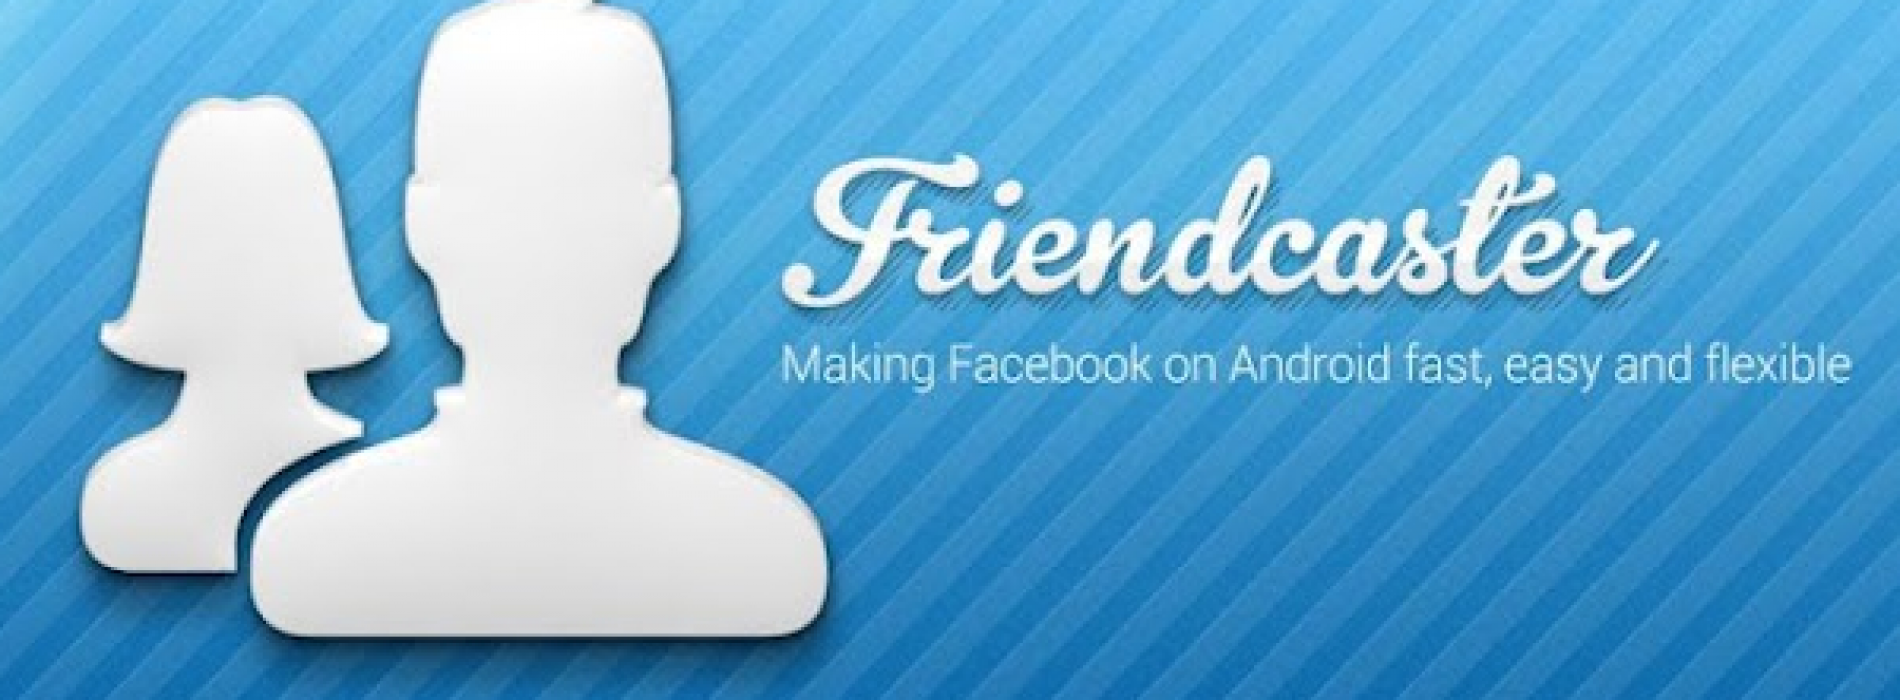 Friendcaster, Plume updated with gorgeous new ICS-like designs